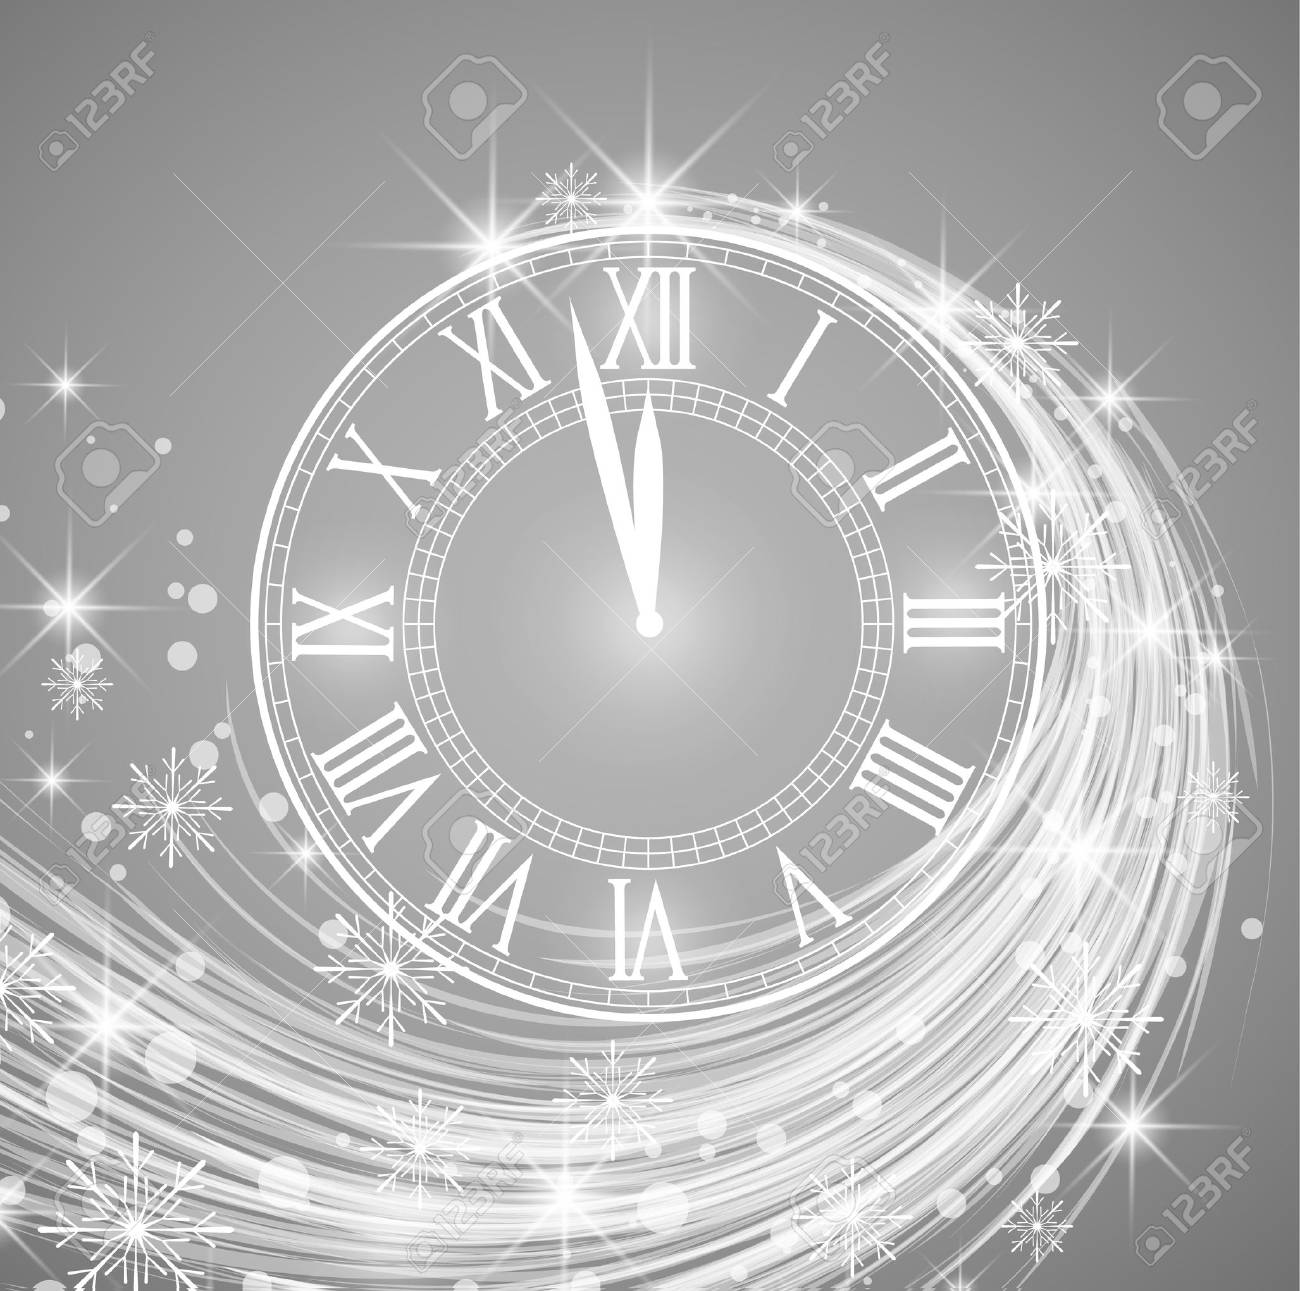 Happy New Year, vector illustration of new year background with snow and clock - 88672400